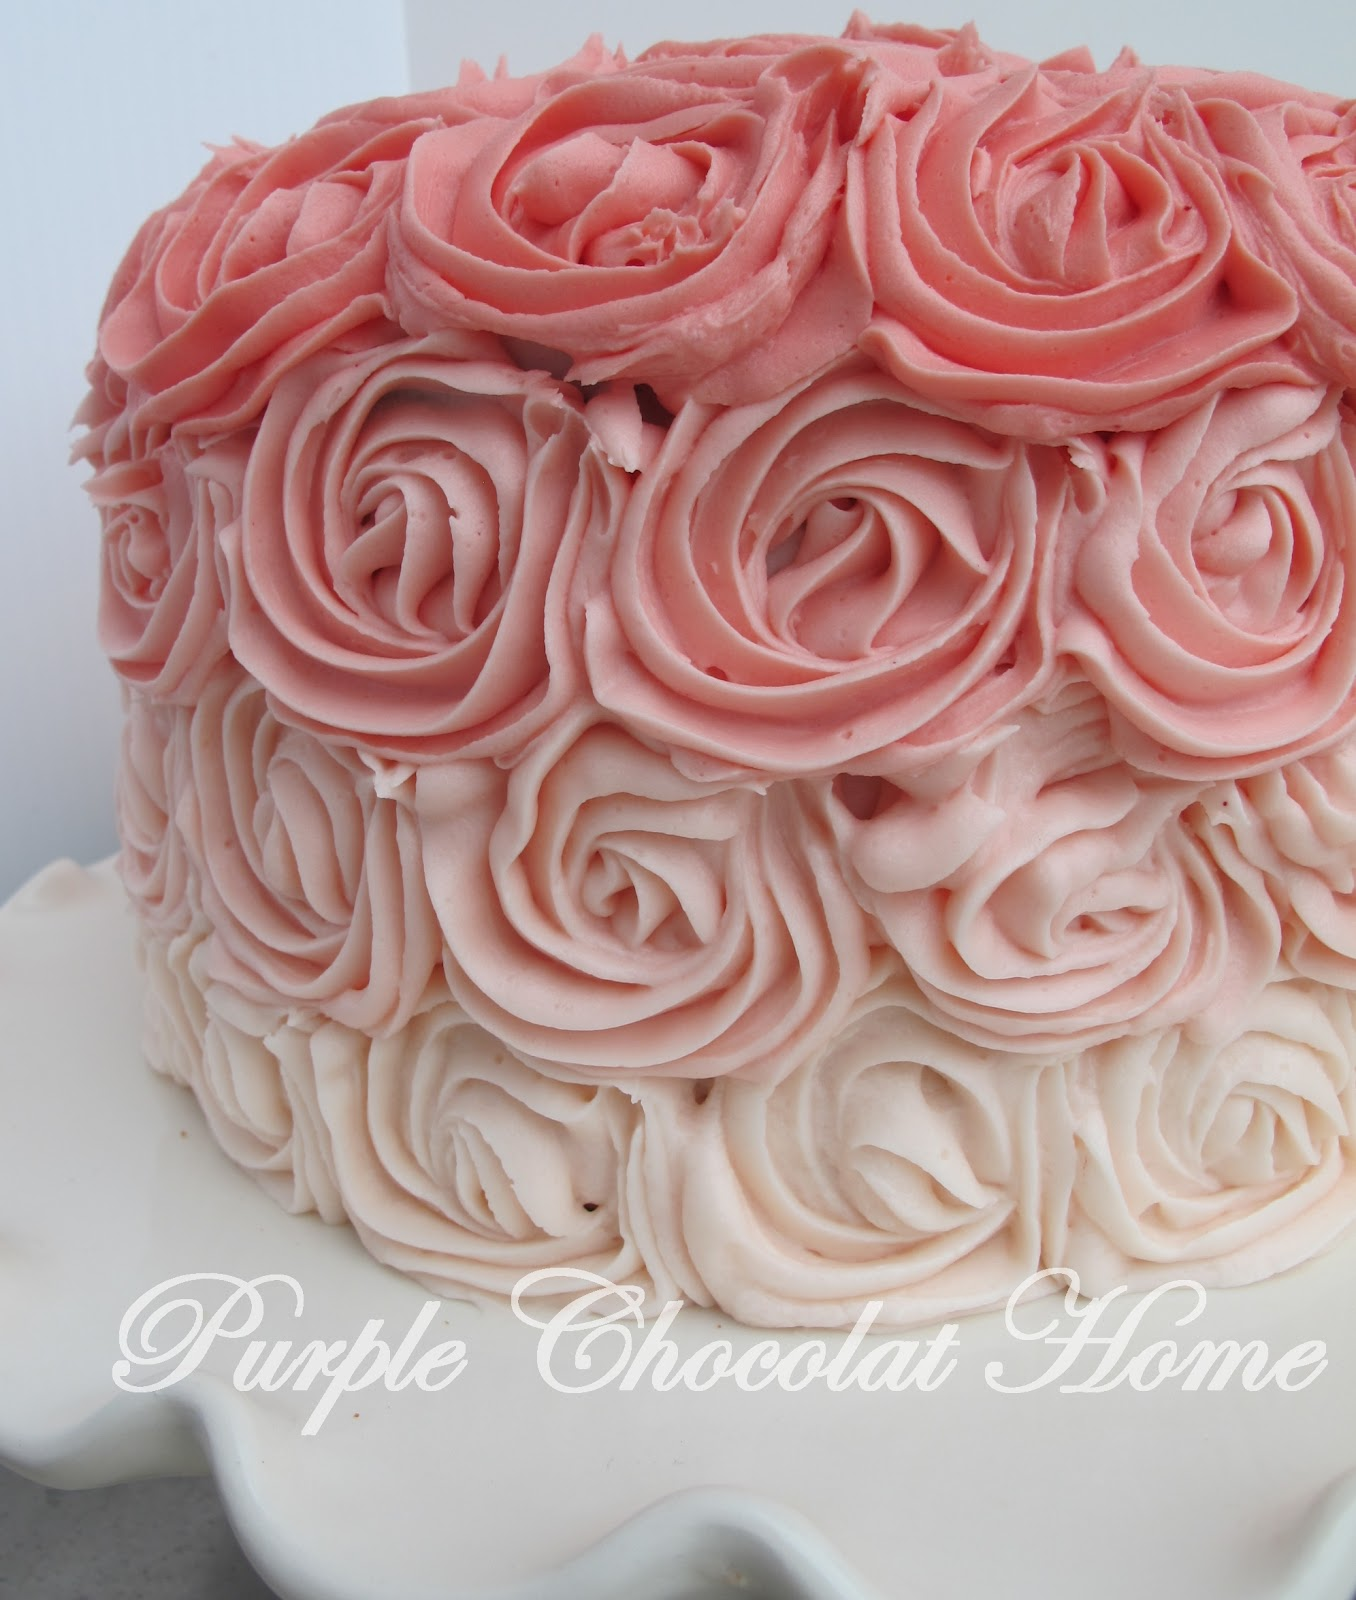 Images For Rose Cake : Ombre Rose Cake - Purple Chocolat Home